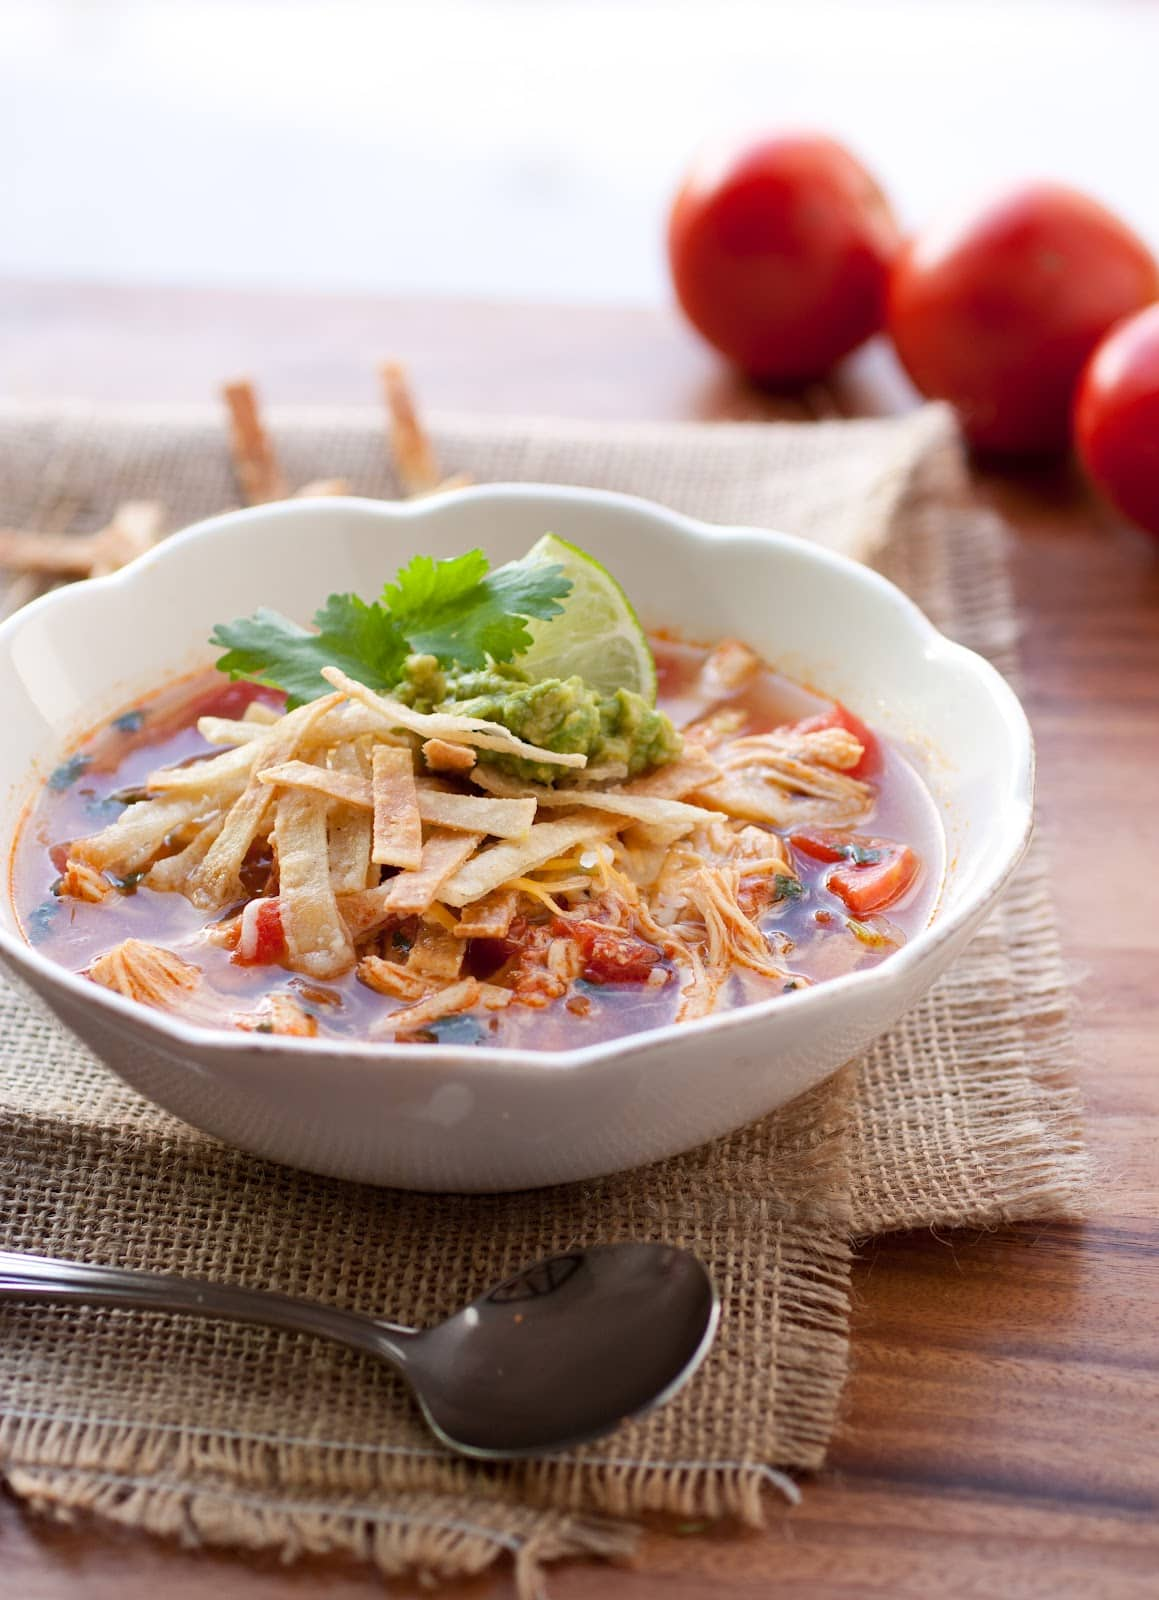 Skinny Slow Cooker Chicken Tortilla Soup is my absolute FAVORITE SOUP recipe  for Winter! Spicy